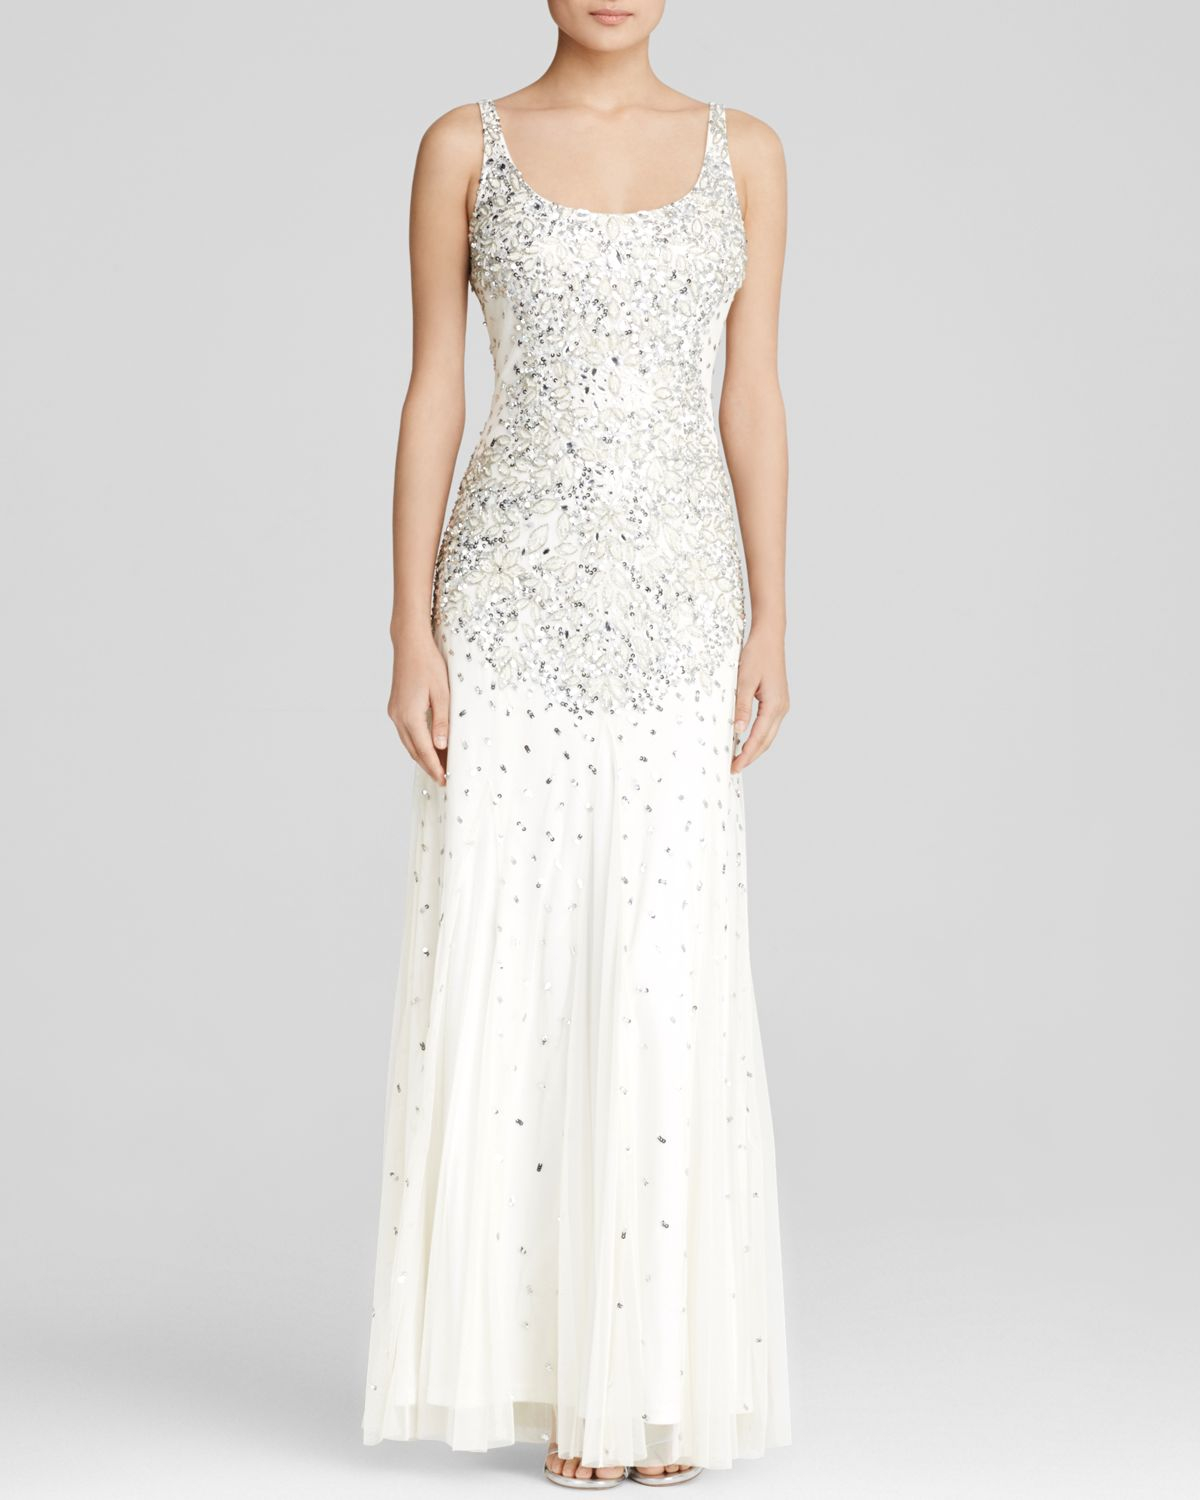 Lyst - Adrianna Papell Gown - Scoop Neck Beaded Mesh in White